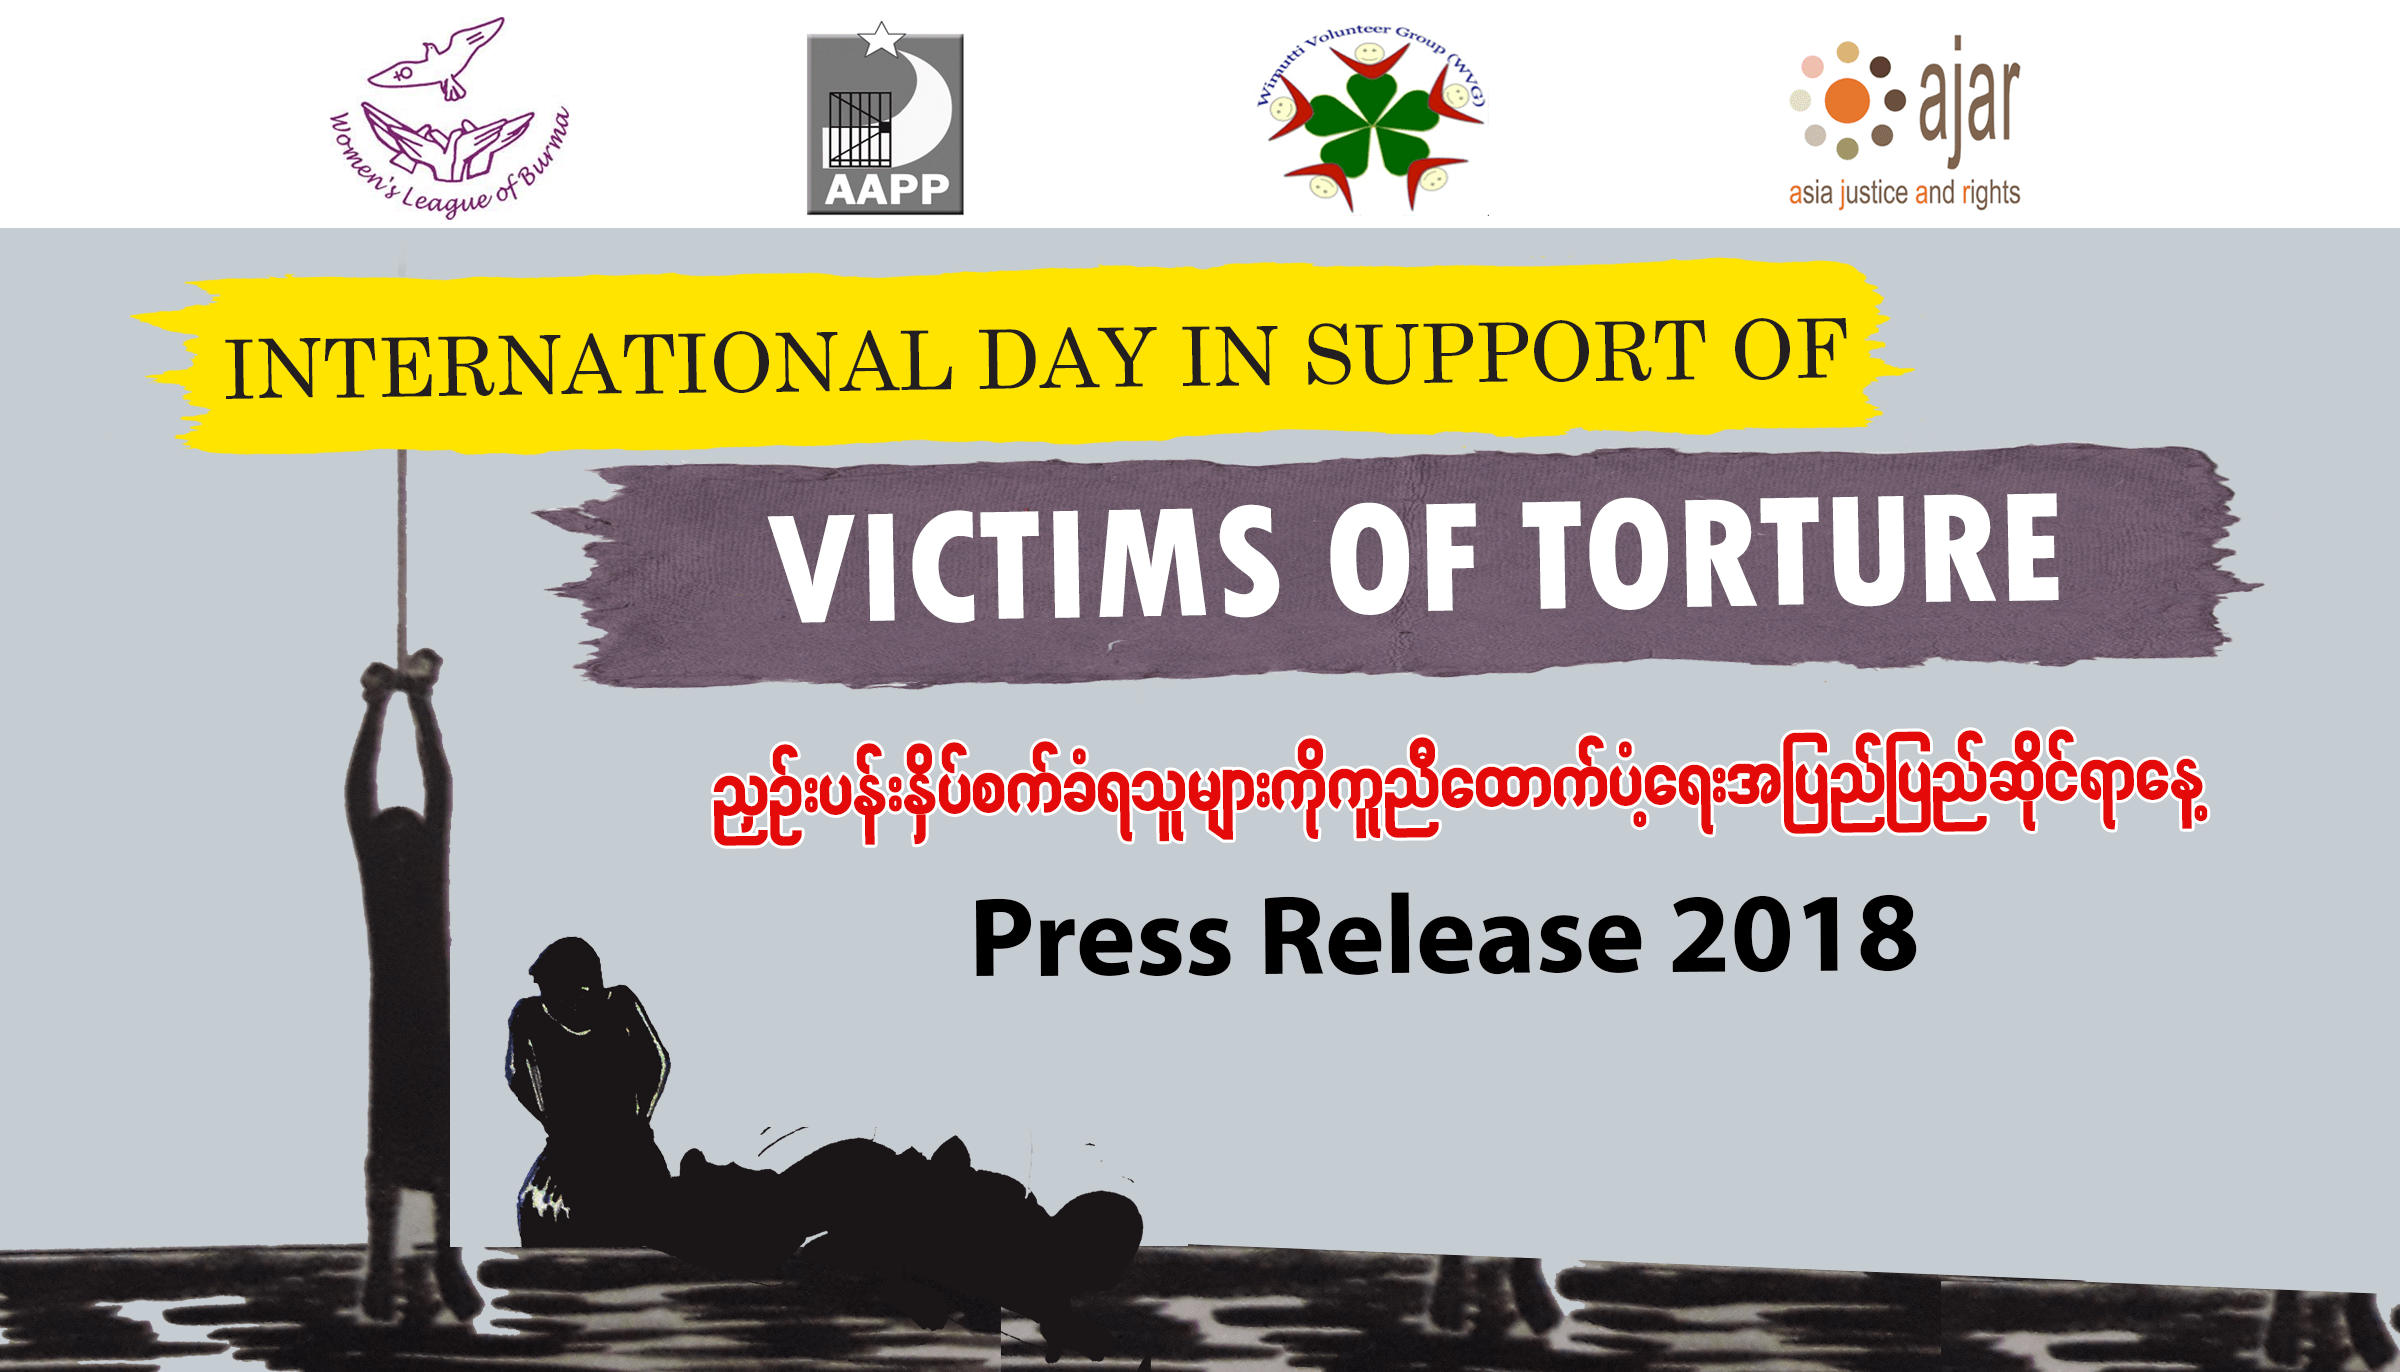 Press Release: International Day in Support of Victims of Torture, Yangon, Myanmar